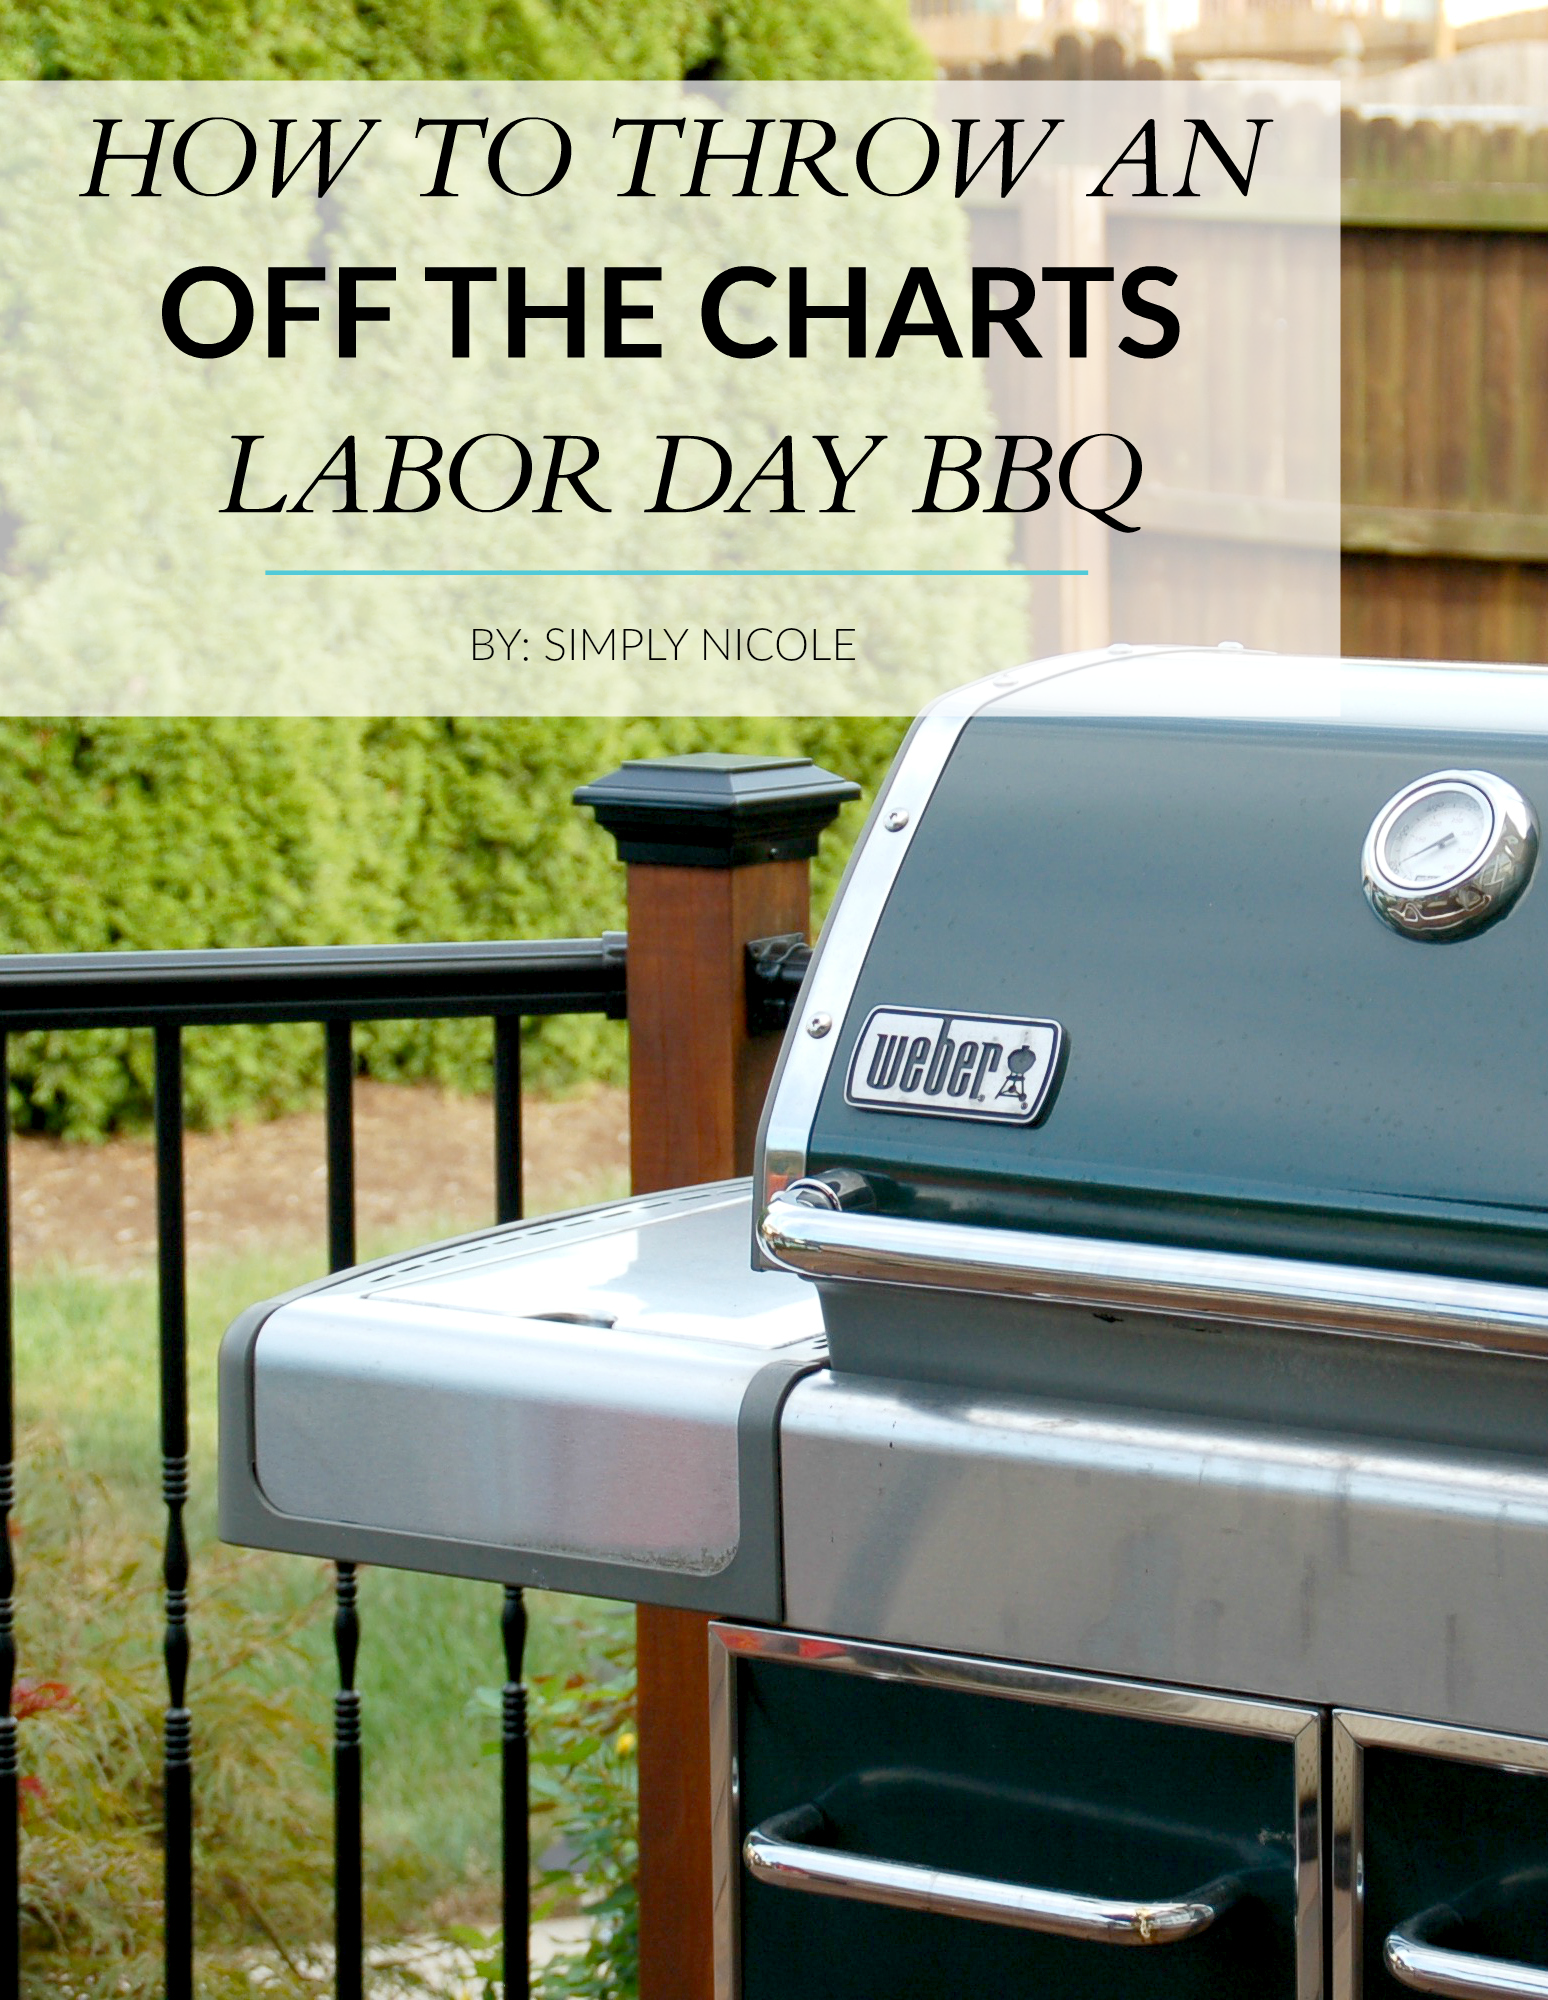 labor day bbq tips